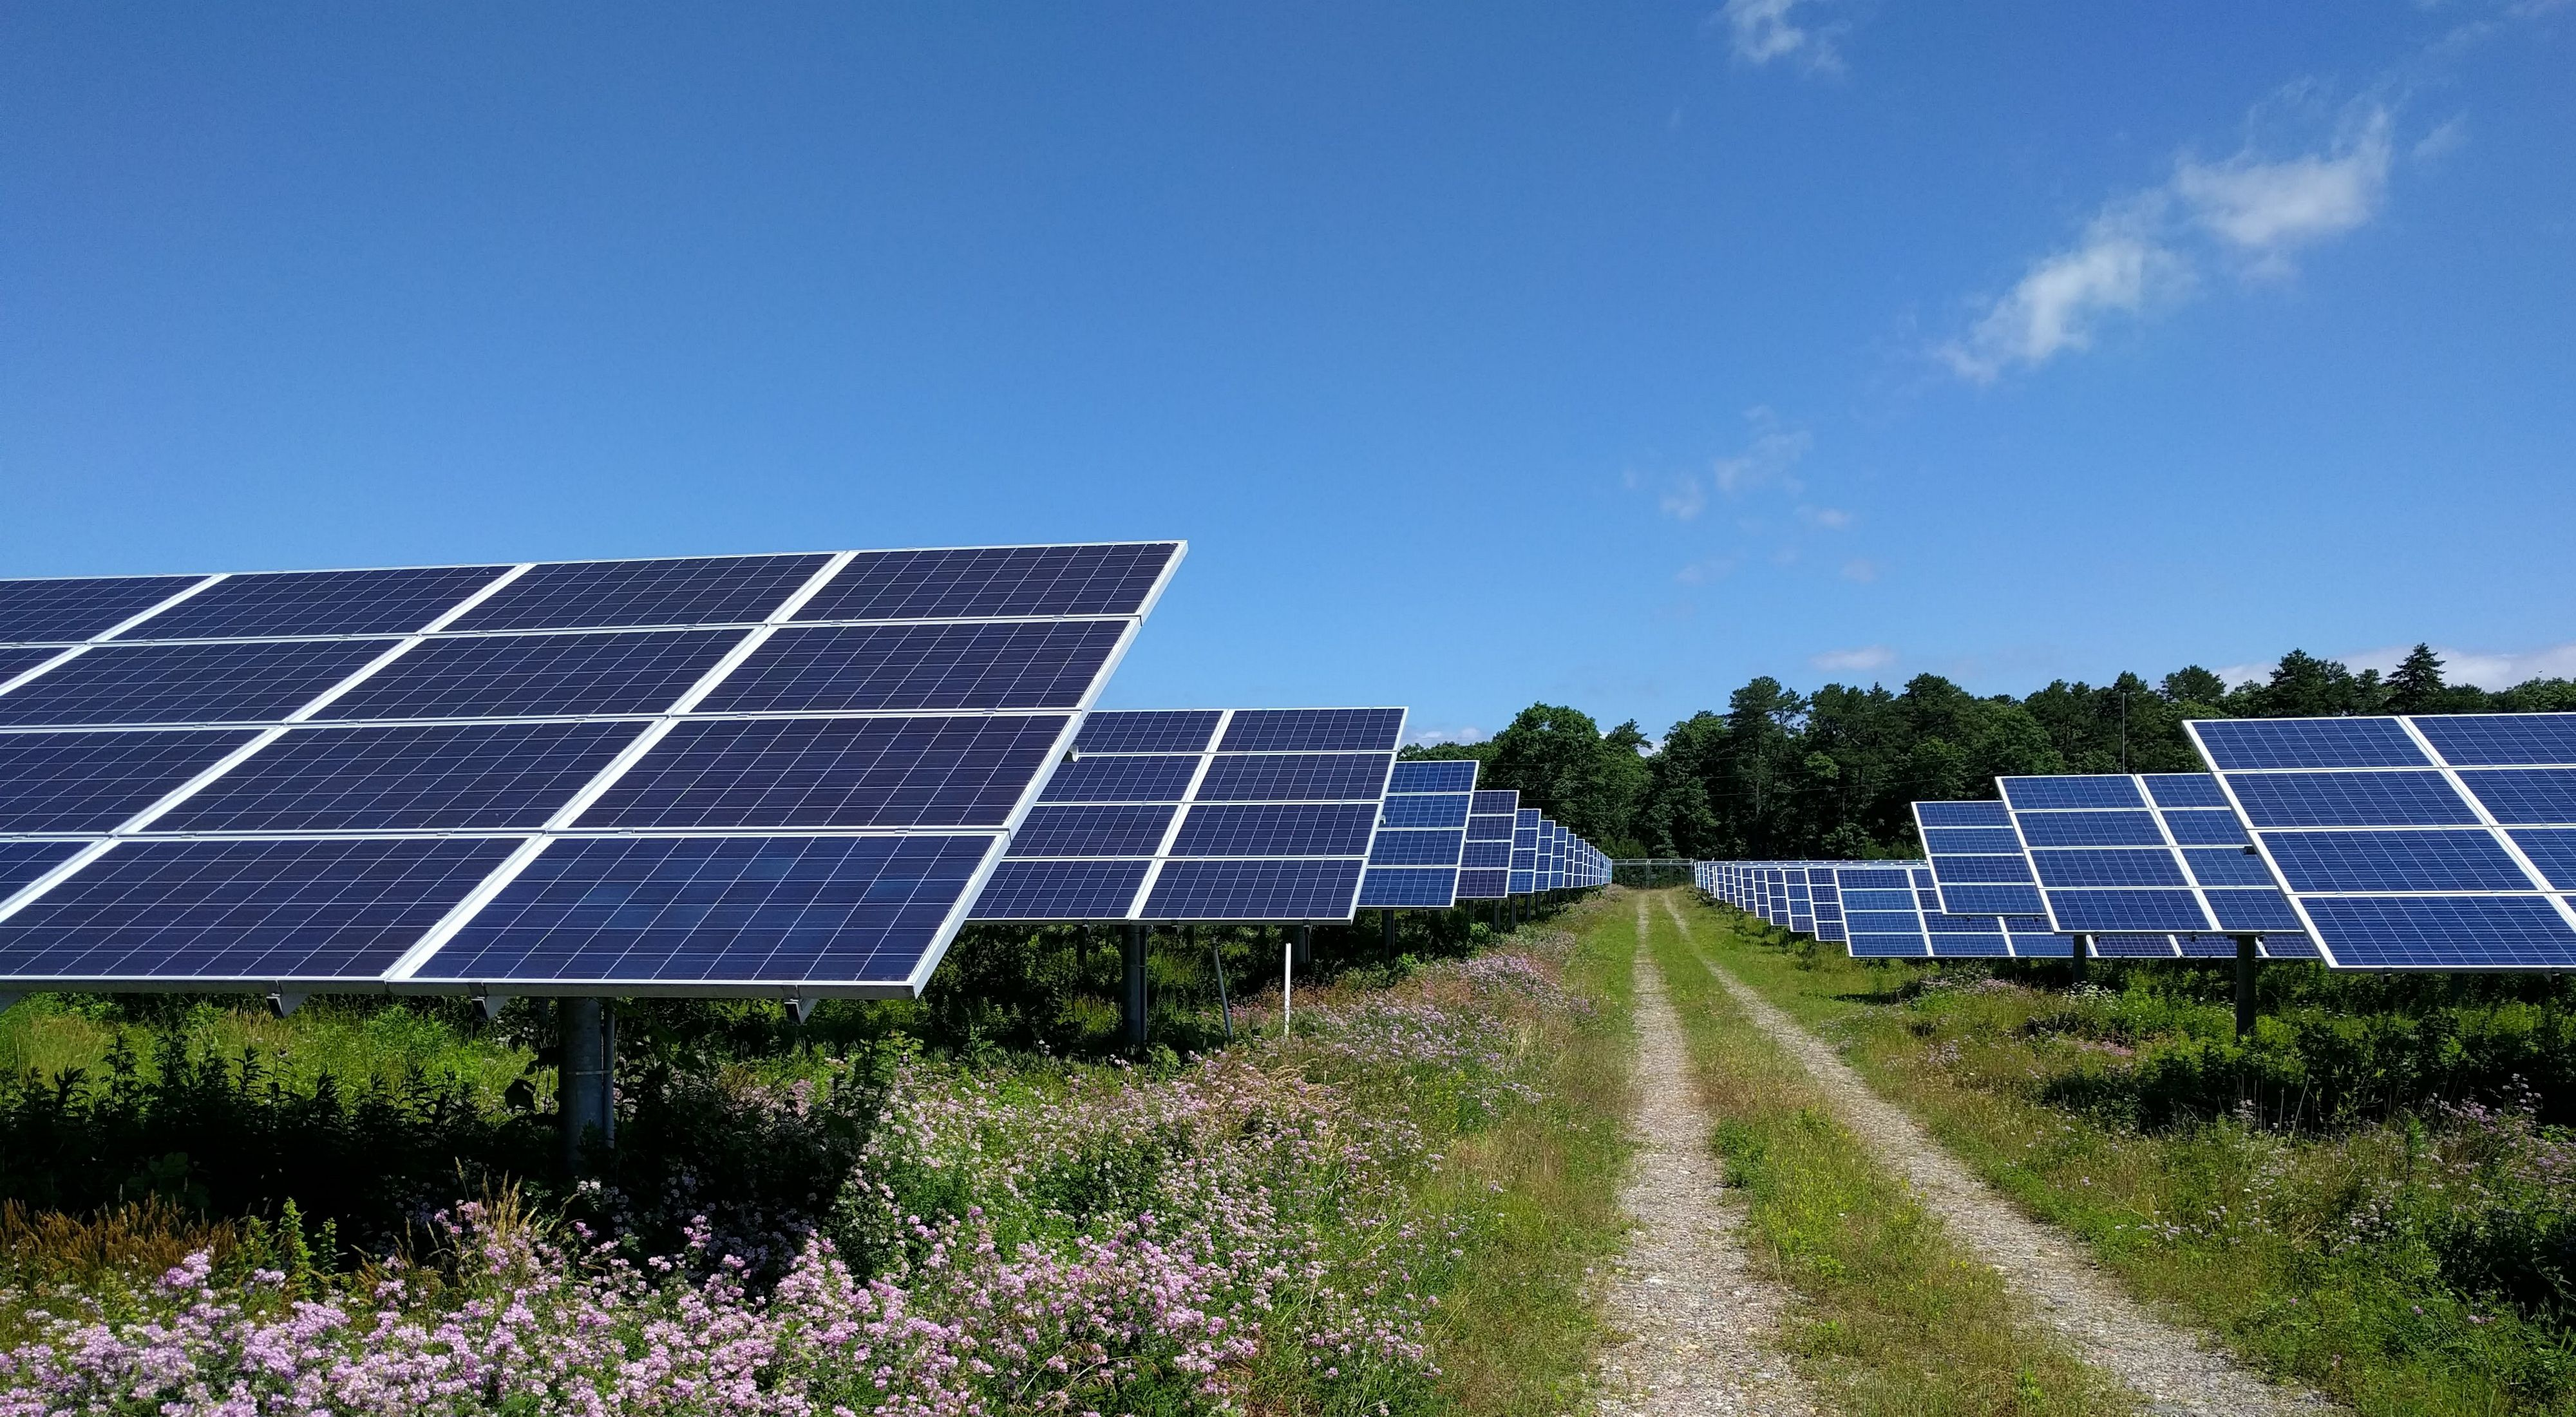 Looking down a dirt path with green grass and rows of solar arrays in view, along with pink flowers in bottom left corner.